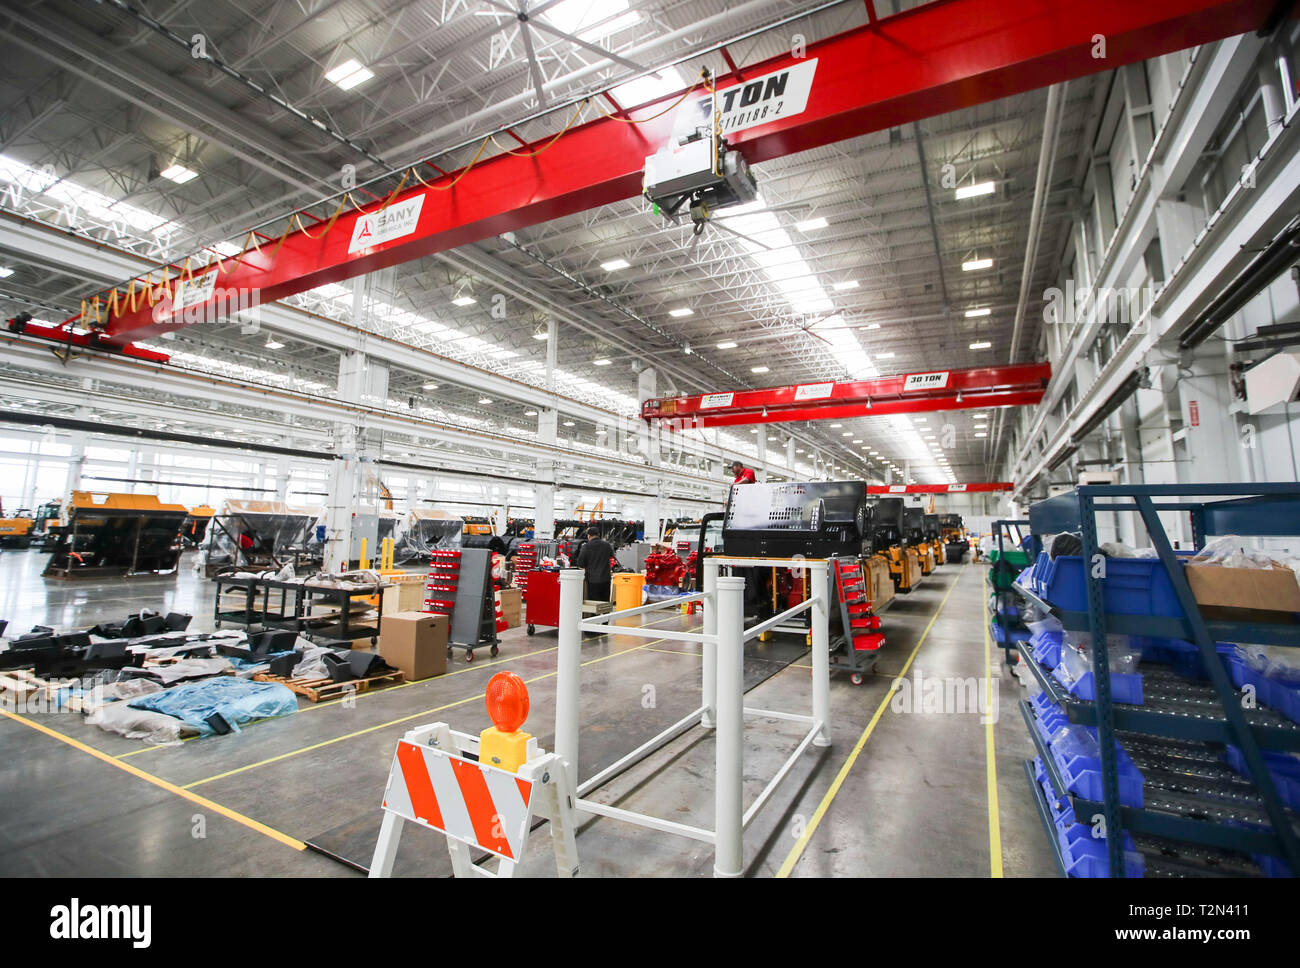 Georgia, USA  29th Mar, 2019  Employees work at the plant of